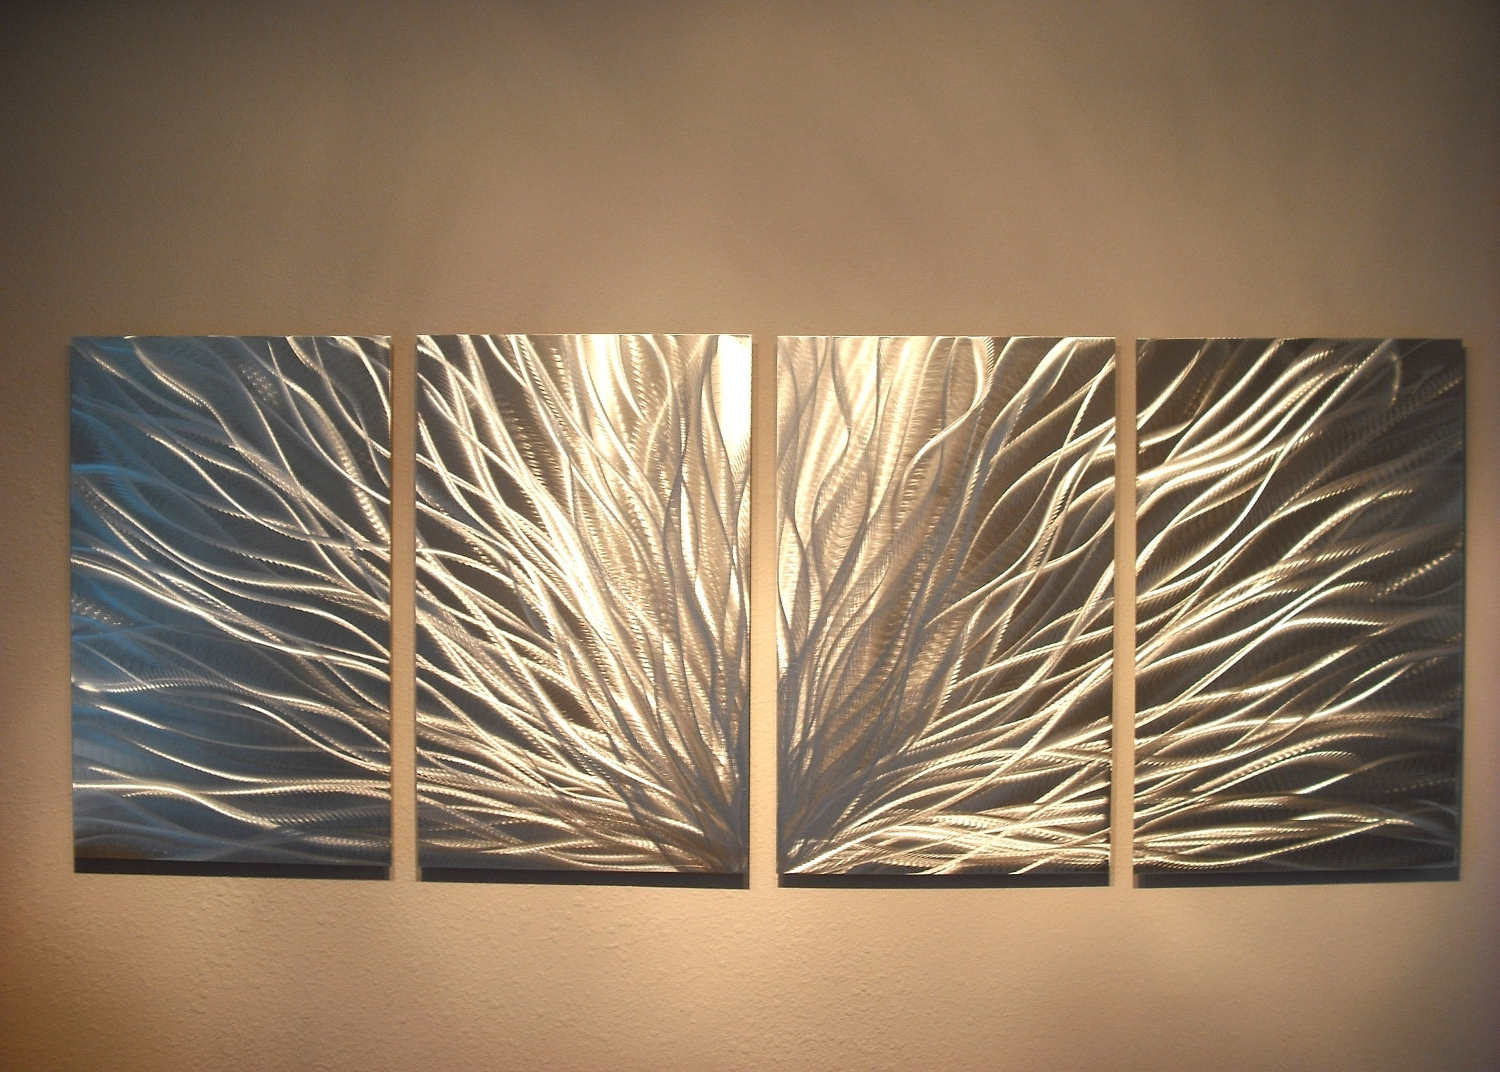 Radiance – Abstract Metal Wall Art Contemporary Modern Decor Throughout Preferred Light Abstract Wall Art (View 12 of 15)